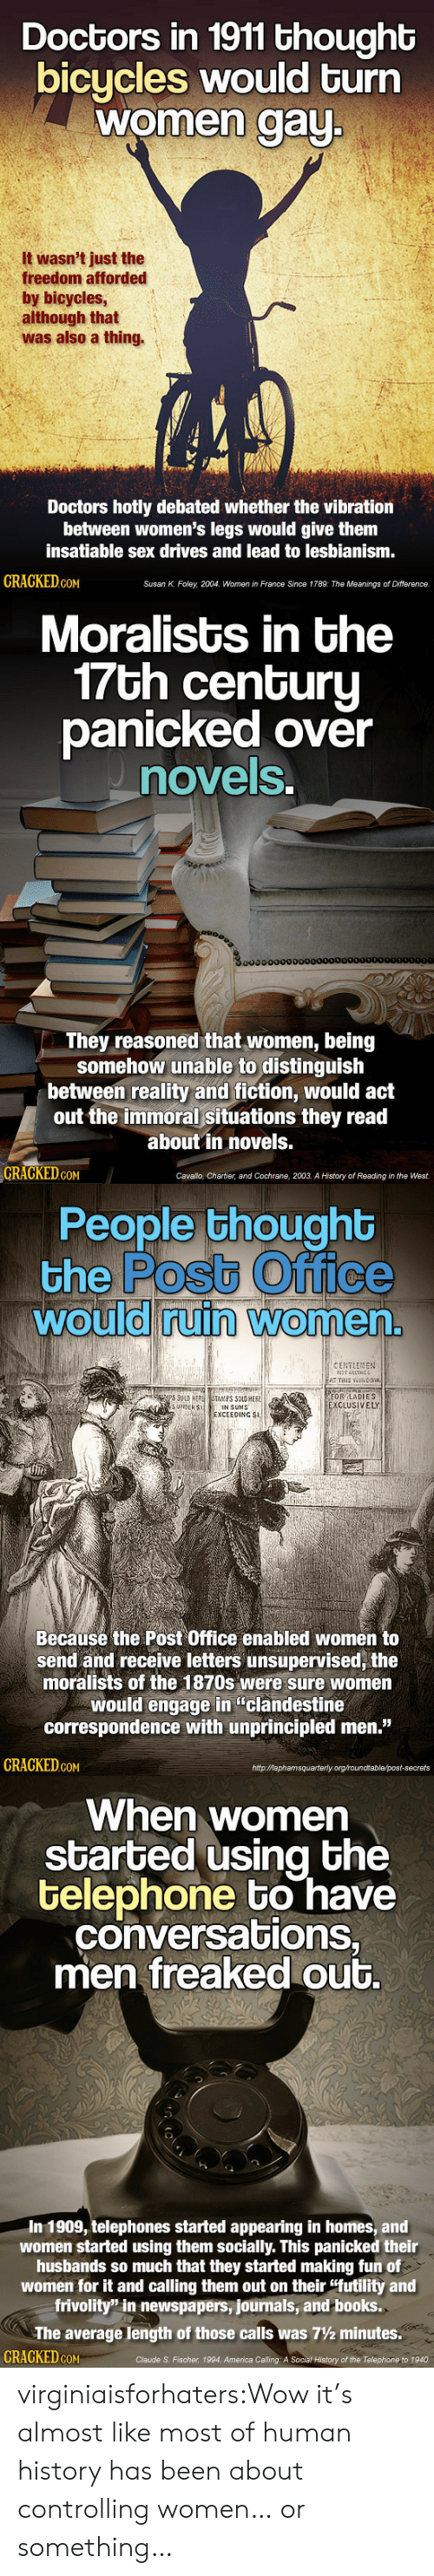 """America, Books, and Post Office: Doctors in 1911 thought  bicycles would turn  women aU  It wasn't just the  freedom afforded  by bicycles  although that  was also a thing.  Doctors hotly debated whether the vibration  between women's legs would give them  insatiable sex drives and lead to lesbianism  GRAGKED GoM  Susan K. Foley, 2004, Women in France Since 1789: The Meanings of Difference.   Moralists in the  7Gh cenGuru  panicked over  novels  0o000000000  They reasoned that women, being  somehow unable to distinguish  between reality and fiction, would act  out the immoral situations they read  about in novels.  GRAGKED.GOM  Cavallo, Chartier, and Cochrane, 2003. A History of Reading in the West.   People thoughb  the Postb Office  would ruin Women  0  0  CENTLEMENl  FOR LADIES  XCLUSİVELY  SUNDER S  IN SUMS  EXCEEDING SI  Becausé the Post Office enabled women to  send and receive letters unsupervised, the  moralists of the 1870s were sure women  would engage in """"clandestine  correspondence with unprincipled men.""""  GRAGKED coM  httpMaphamsquarterly org/roundtable/post-secrets   When women  started using bhe  telephone bo have  conversations,  men freaked out.  In 1909, telephones started appearing in homes, and  women started using them socially. This panicked their  husbands so much that they started making fun of  women for it and calling them out on their """"futility and  frivolity"""" in newspapers, journals, and books.  The average length of those calls was 7½ minutes.  CRACKED cON  Claude S. Fischer, 1994. America Calling: A Social History of the Telephone to 1940 virginiaisforhaters:Wow it's almost like most of human history has been about controlling women… or something…"""